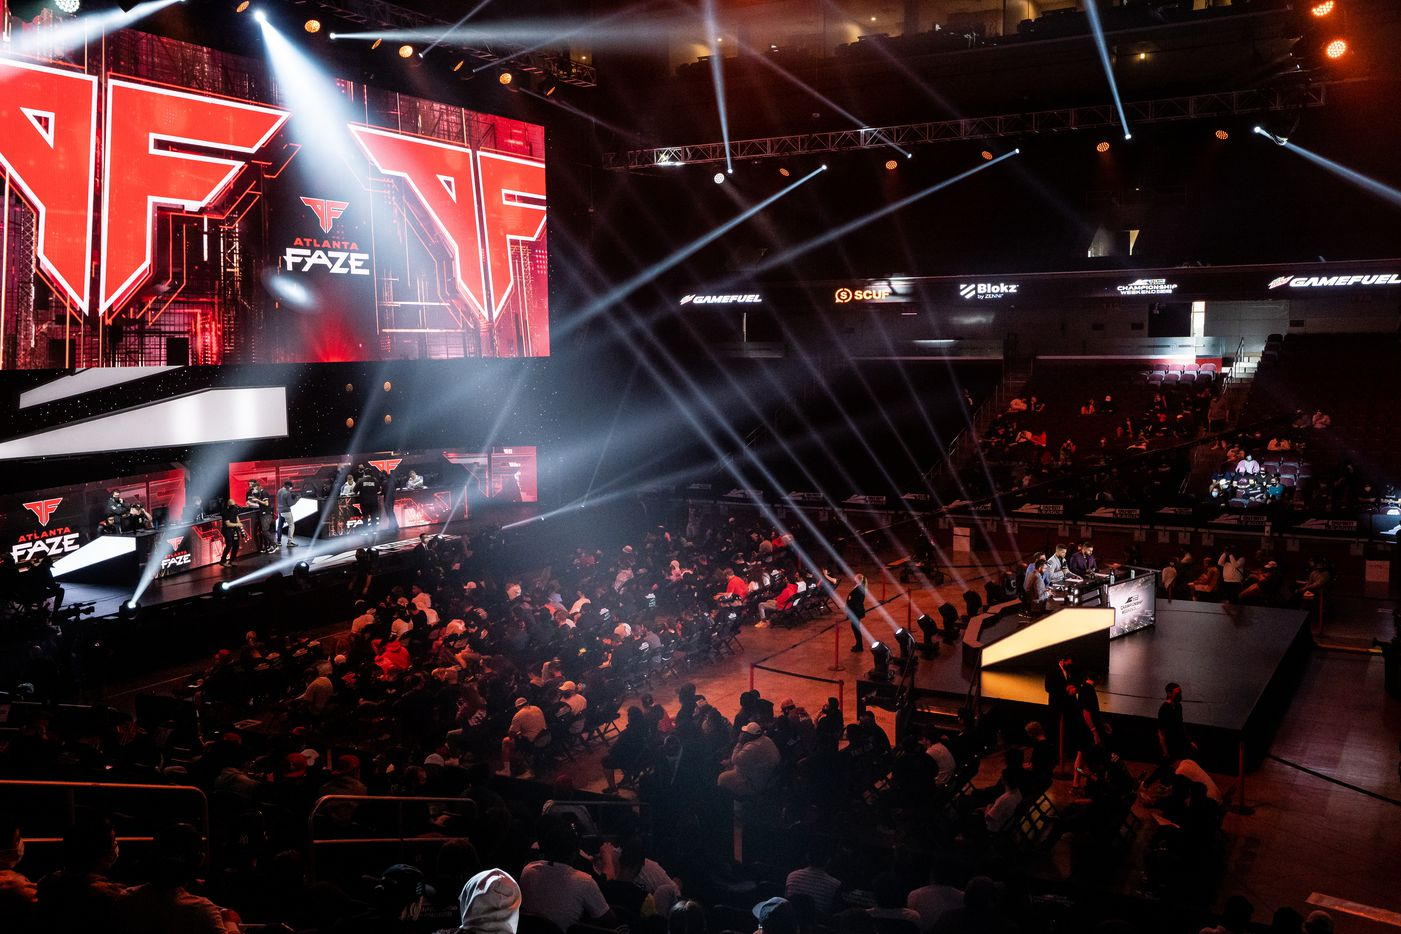 Fans wait for the start of the final day of the Call of Duty league playoffs at the Galen Center on Sunday, August 22, 2021 in Los Angeles, California. The Atlanta FaZe compete against Toronto Ultra in the championship round at 12pm PST. (Justin L. Stewart/Special Contributor)